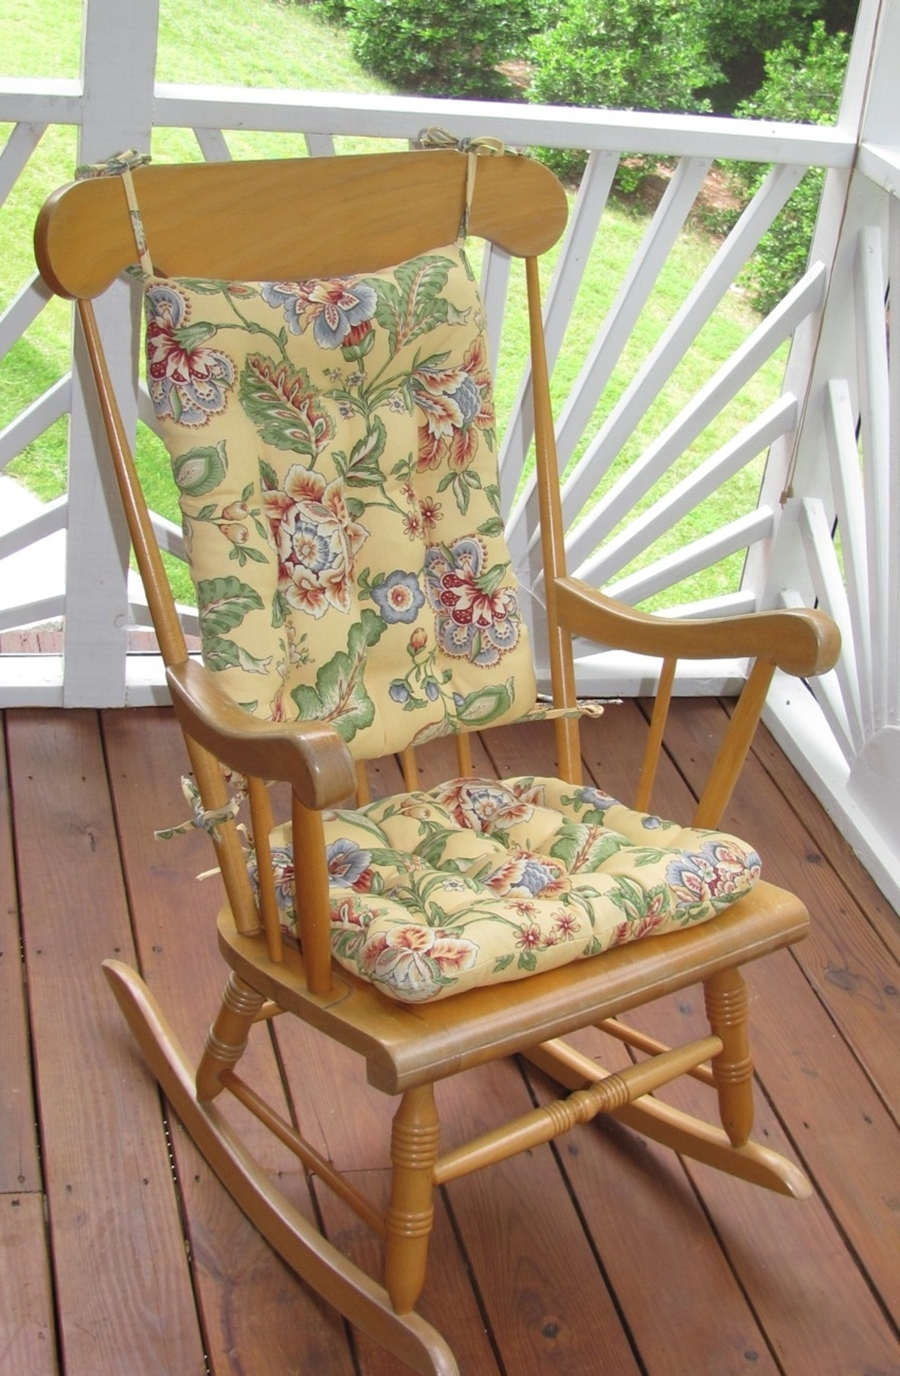 Rocking Chair Cushions For Outdoor Within Most Up To Date Outdoor Rocking Chair Cushions Theme — All Modern Rocking Chairs (View 17 of 20)